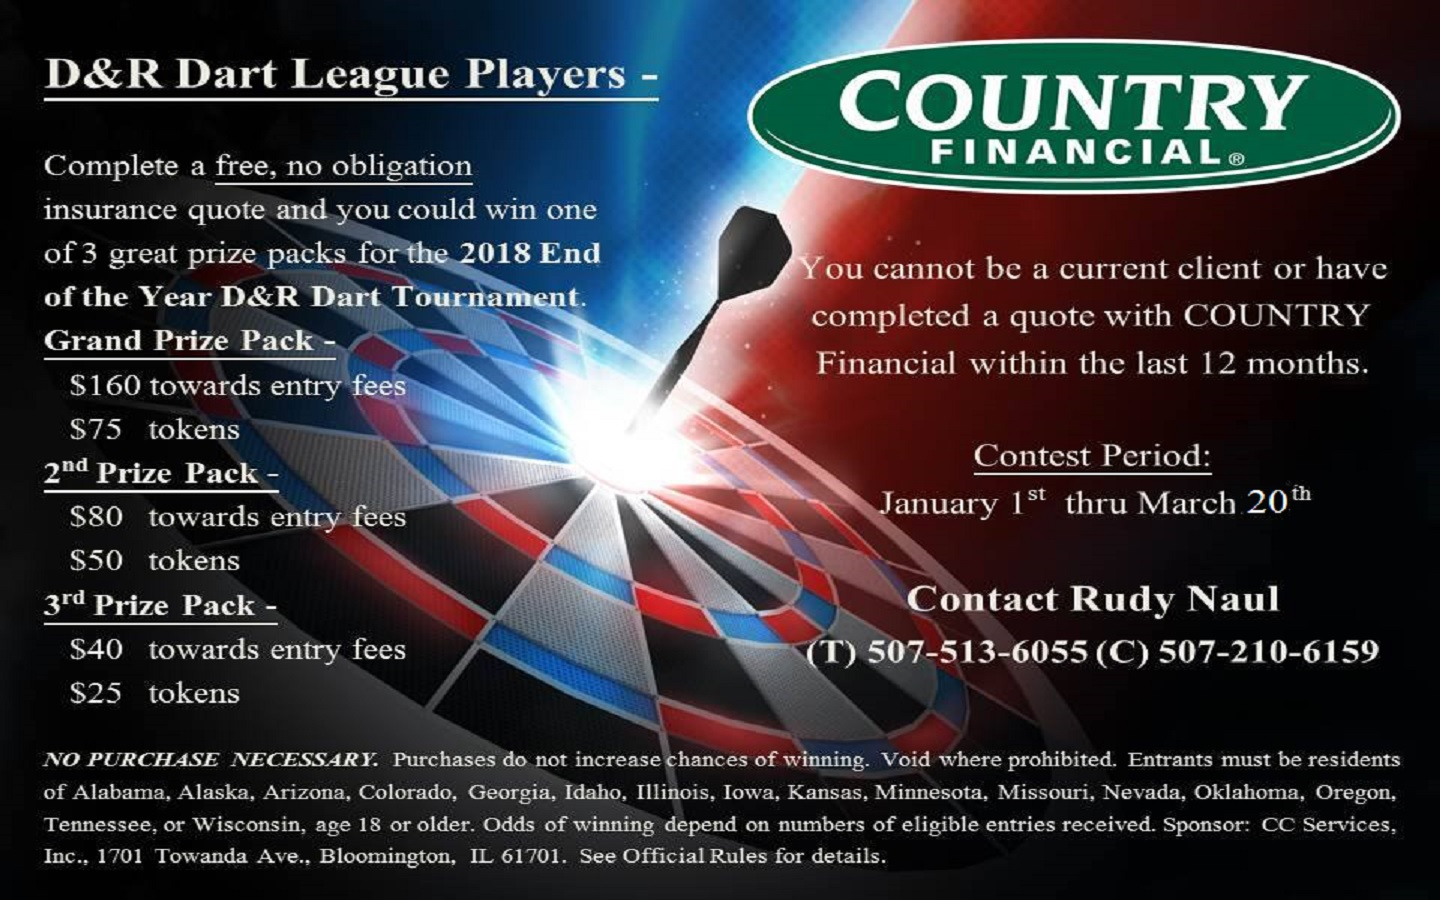 Country Financial Promotion